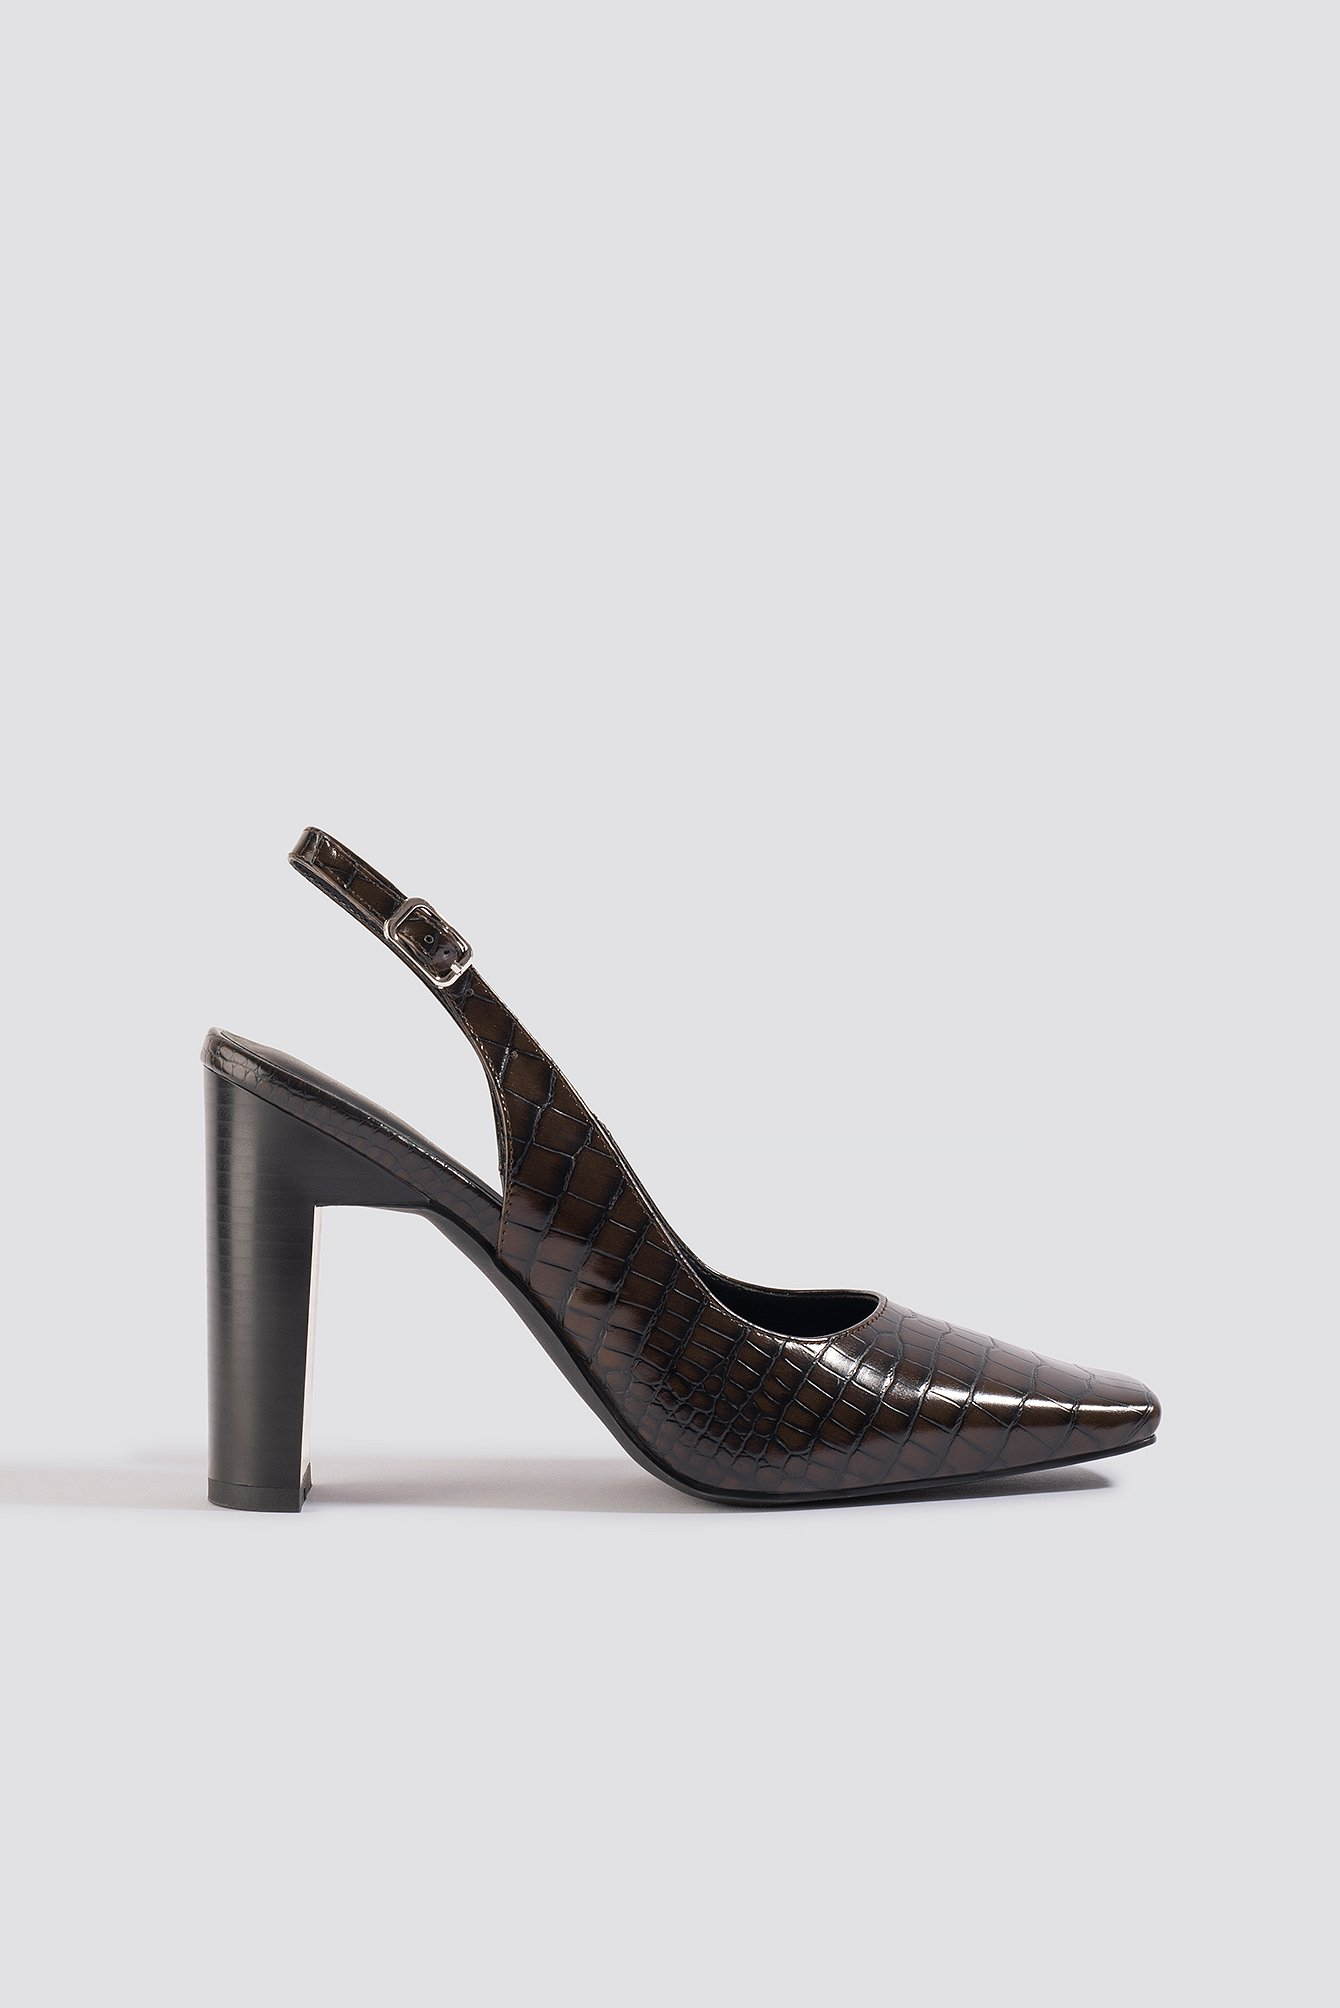 na-kd shoes -  Snake Squared Front Slingback Pumps - Brown